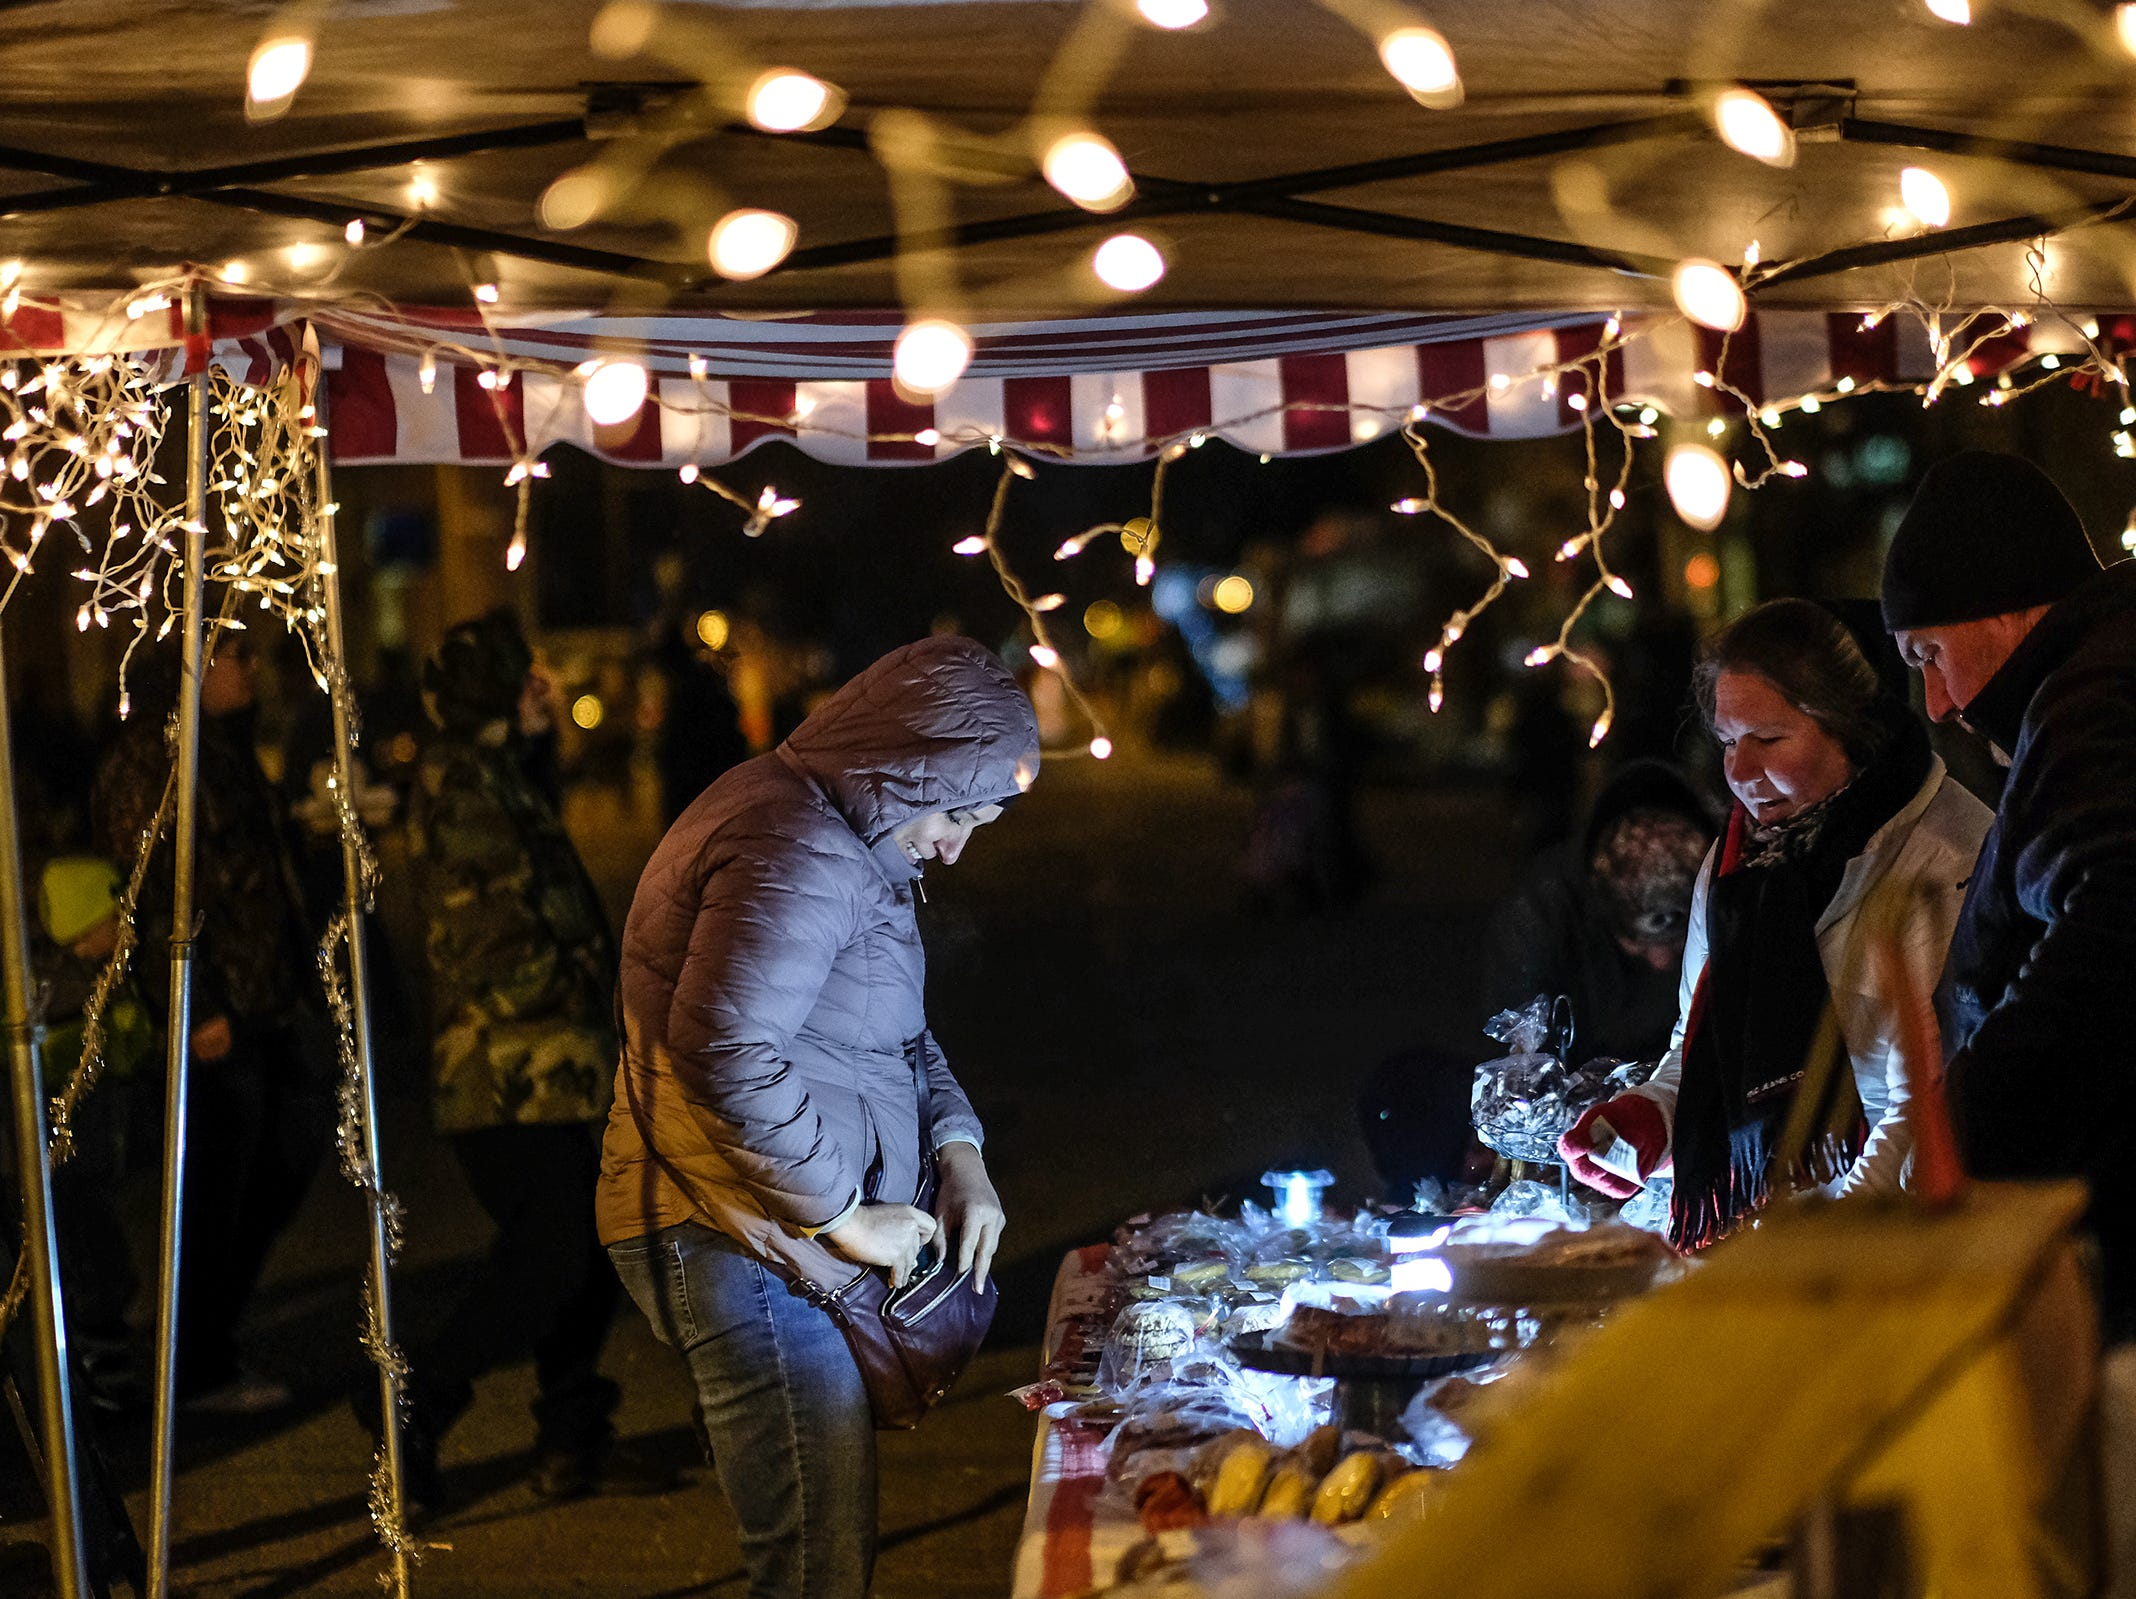 One of the vendors at the Annual Festival of Lights and Santa Parade is The Whisked Away Bakery Friday, Dec. 7, 2018.